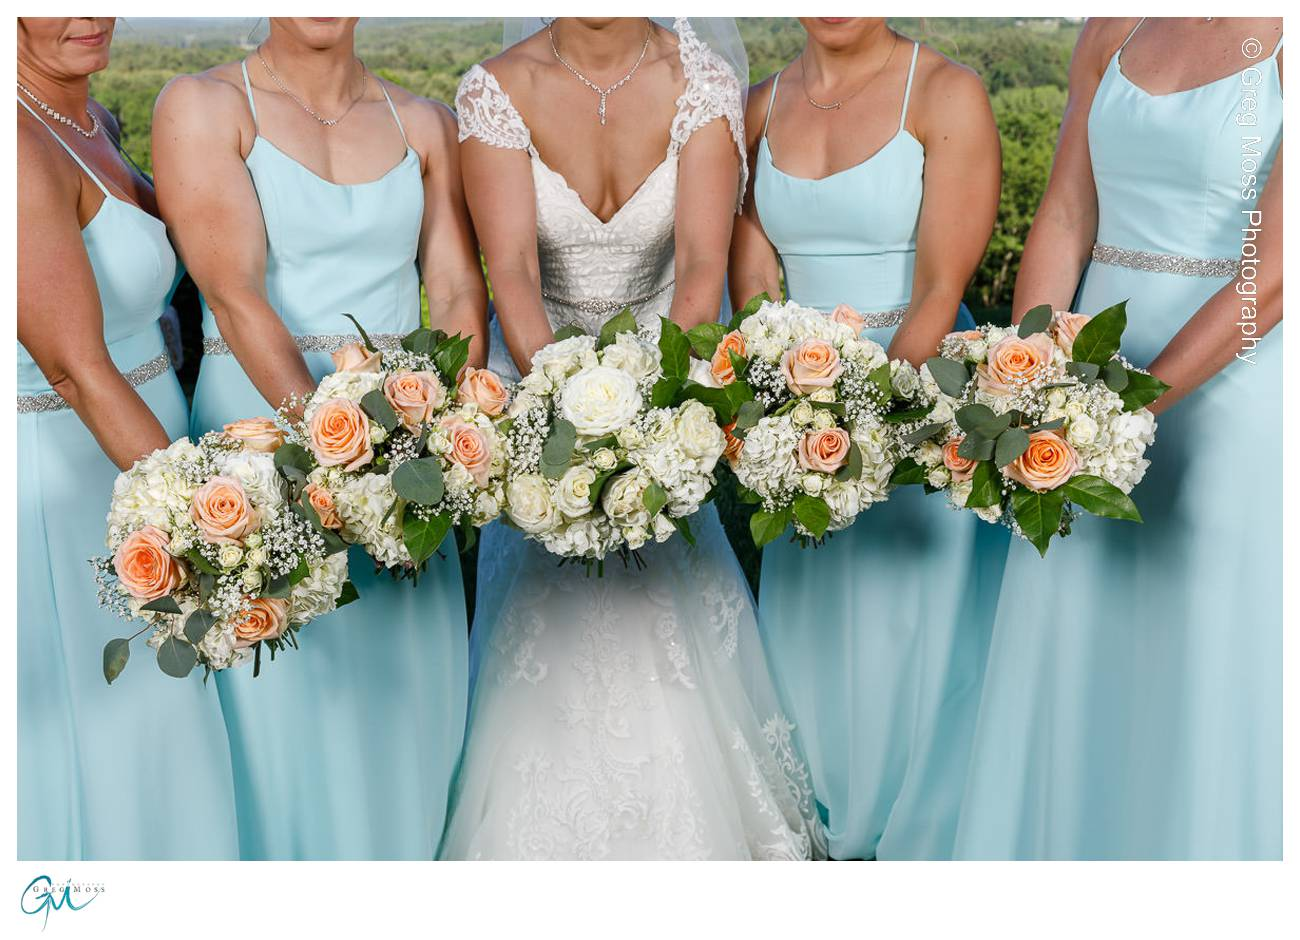 Bridesmaids holding flowers by forget me not florist